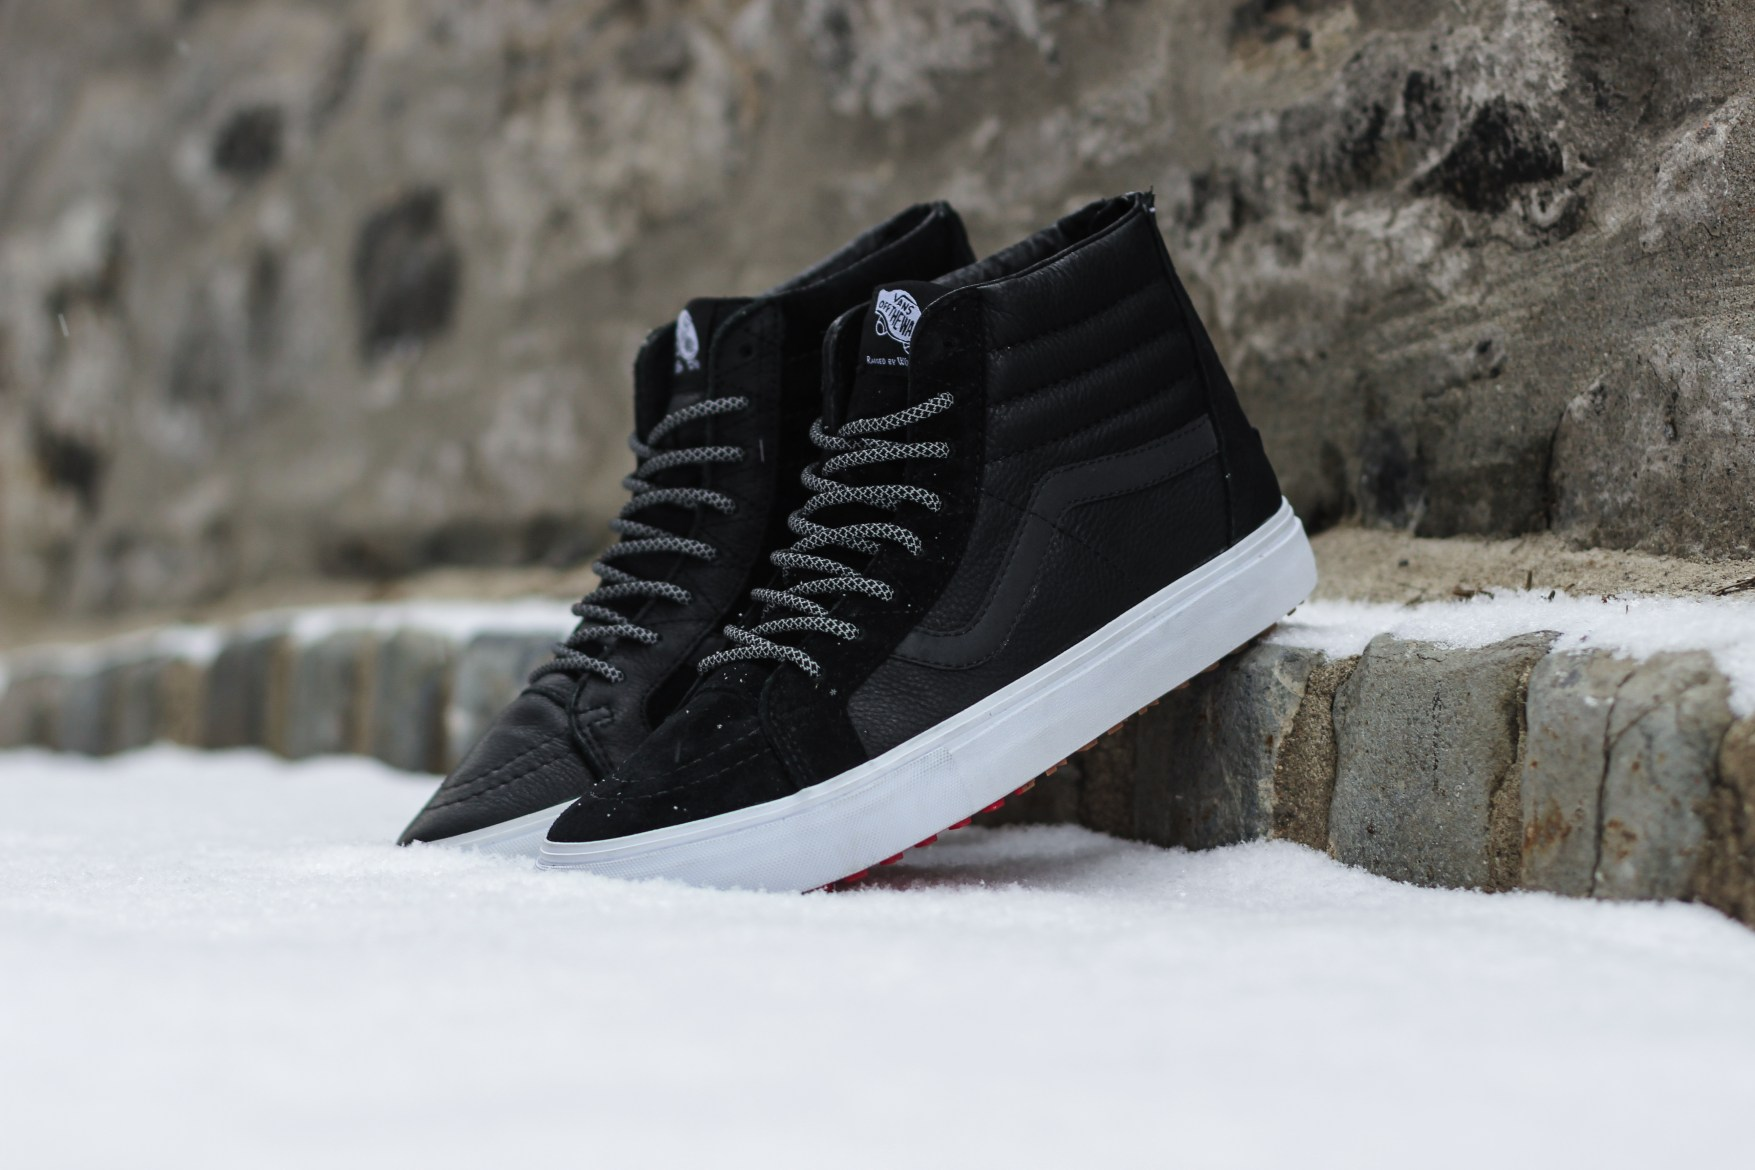 the-raised-by-wolves-x-oth-x-vans-pack-is-fit-for-bracing-the-elements-5.jpg